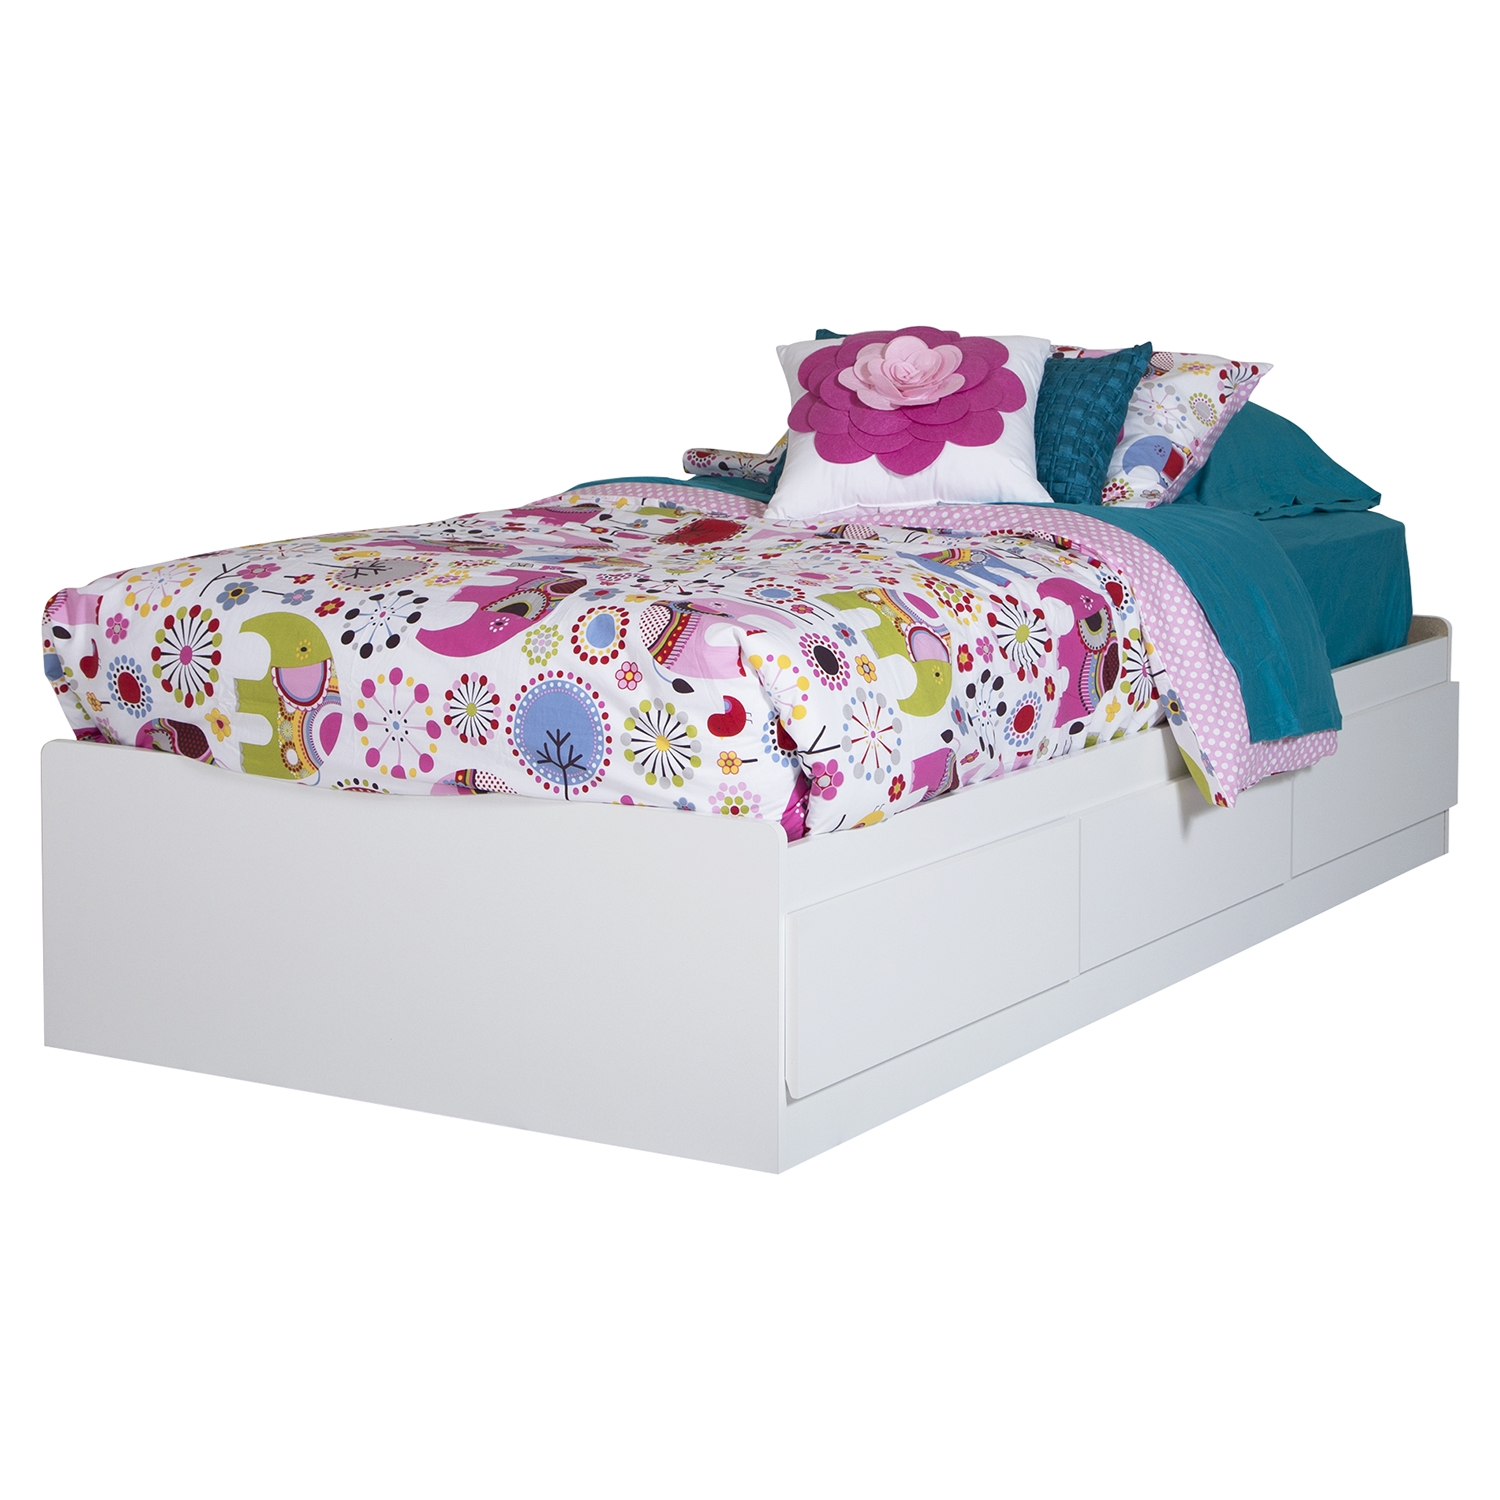 Logik Twin Mates Bed - 3 Drawers, Pure White